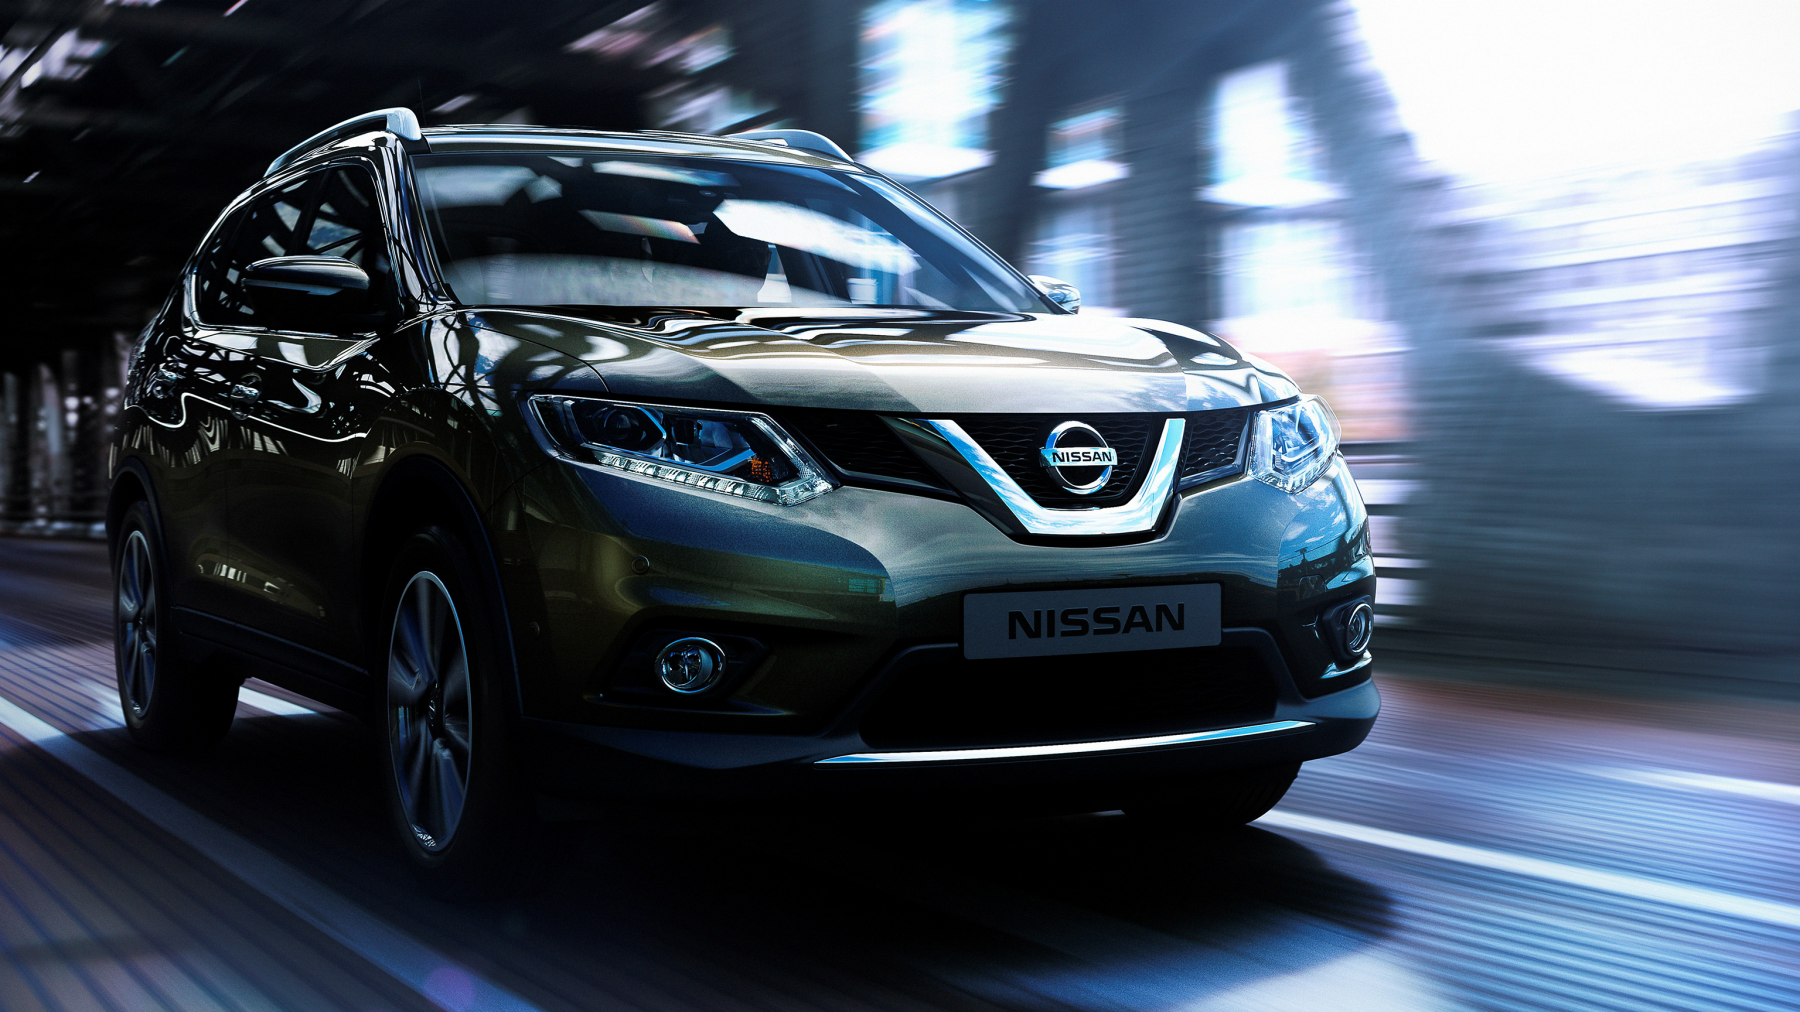 Nissan X-Trail - 3/4 front view